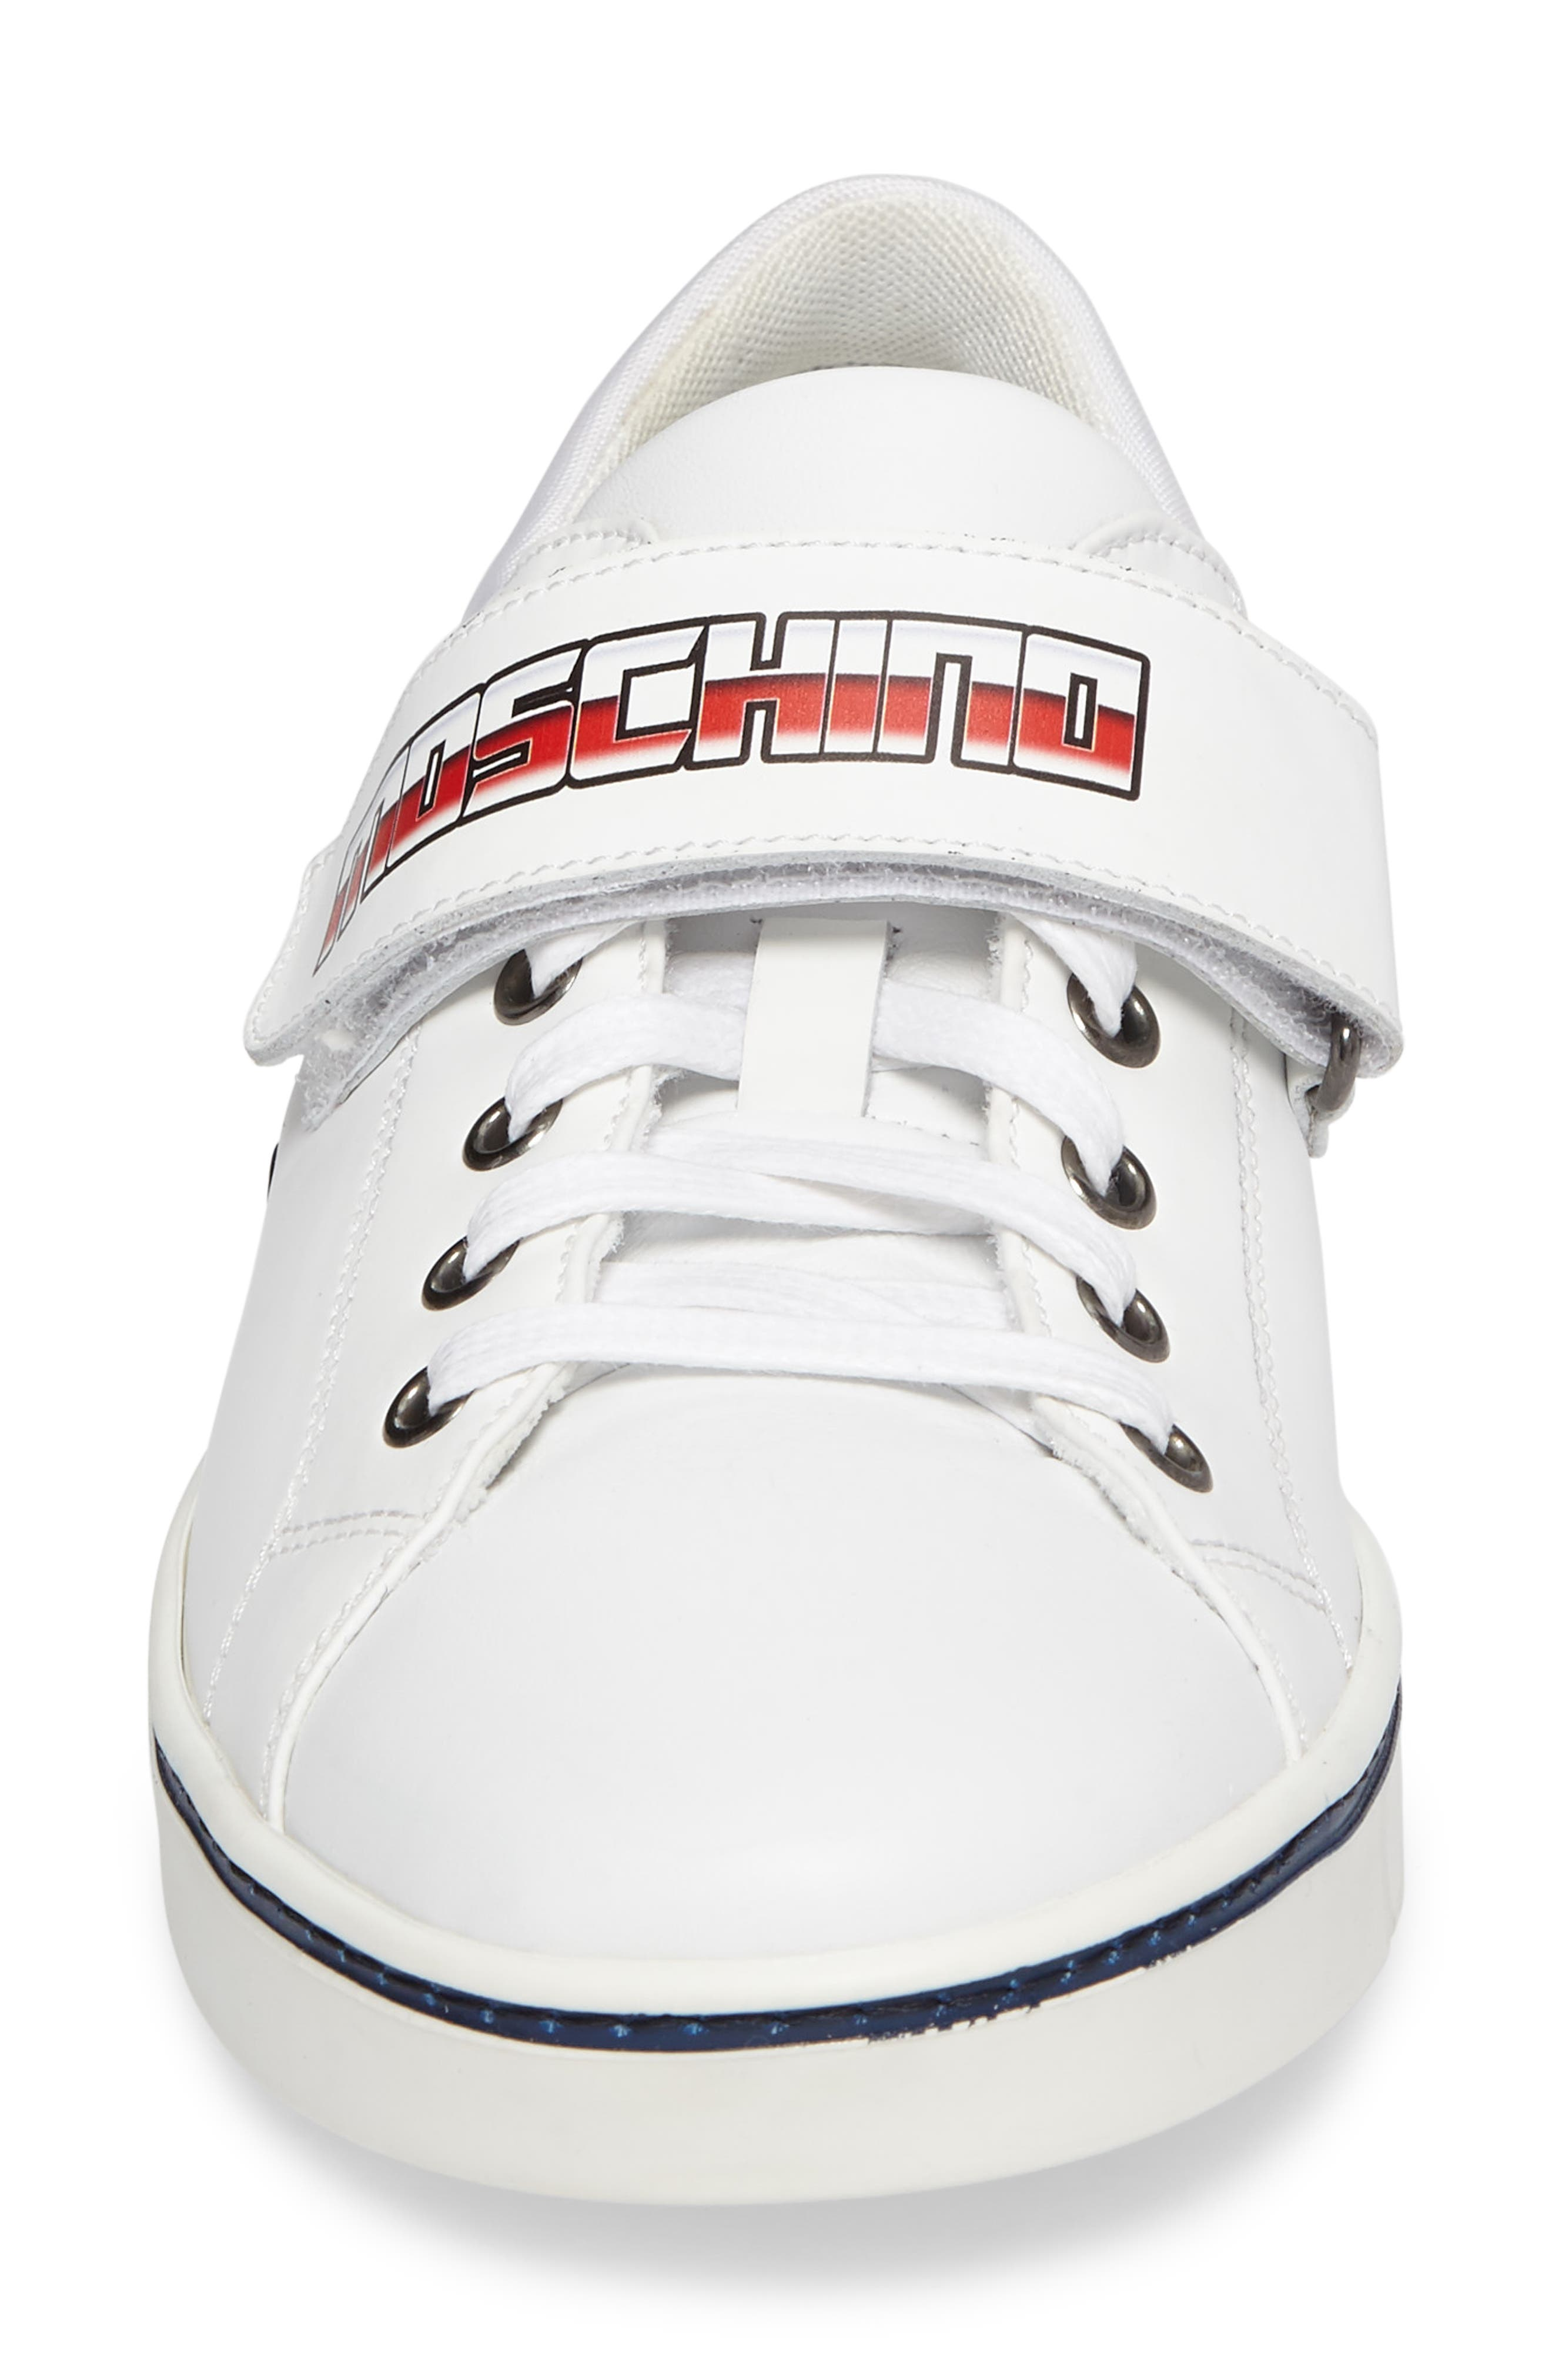 Strap Sneaker,                             Alternate thumbnail 4, color,                             White Leather